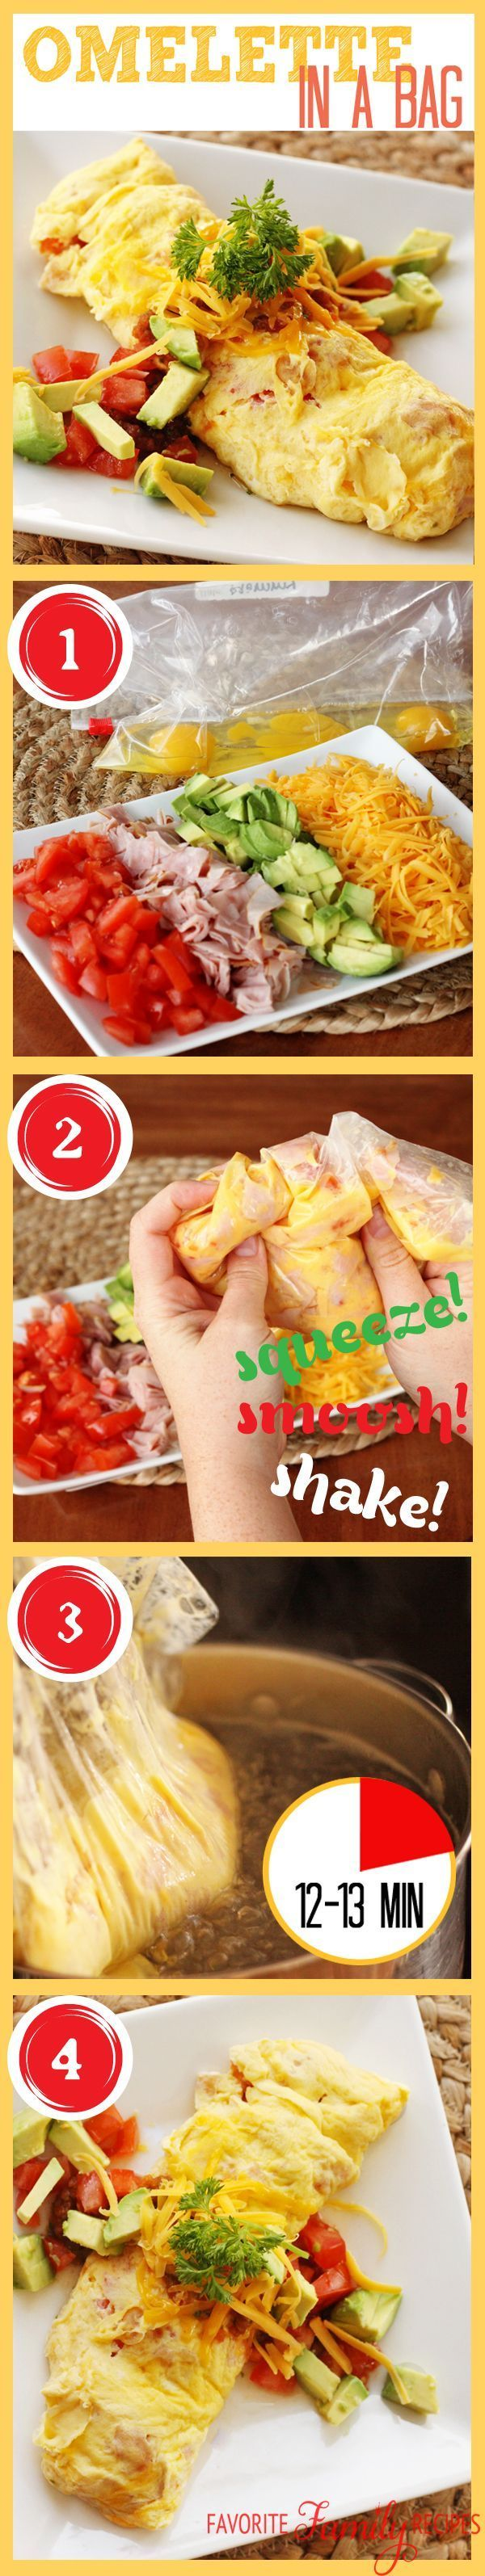 "We make these EVERY SINGLE TIME we go camping and on days when the kids want to ""help"" make breakfast. They are so easy to make and virtually no mess. Plus they come out perfect every time! #omelet #camping"